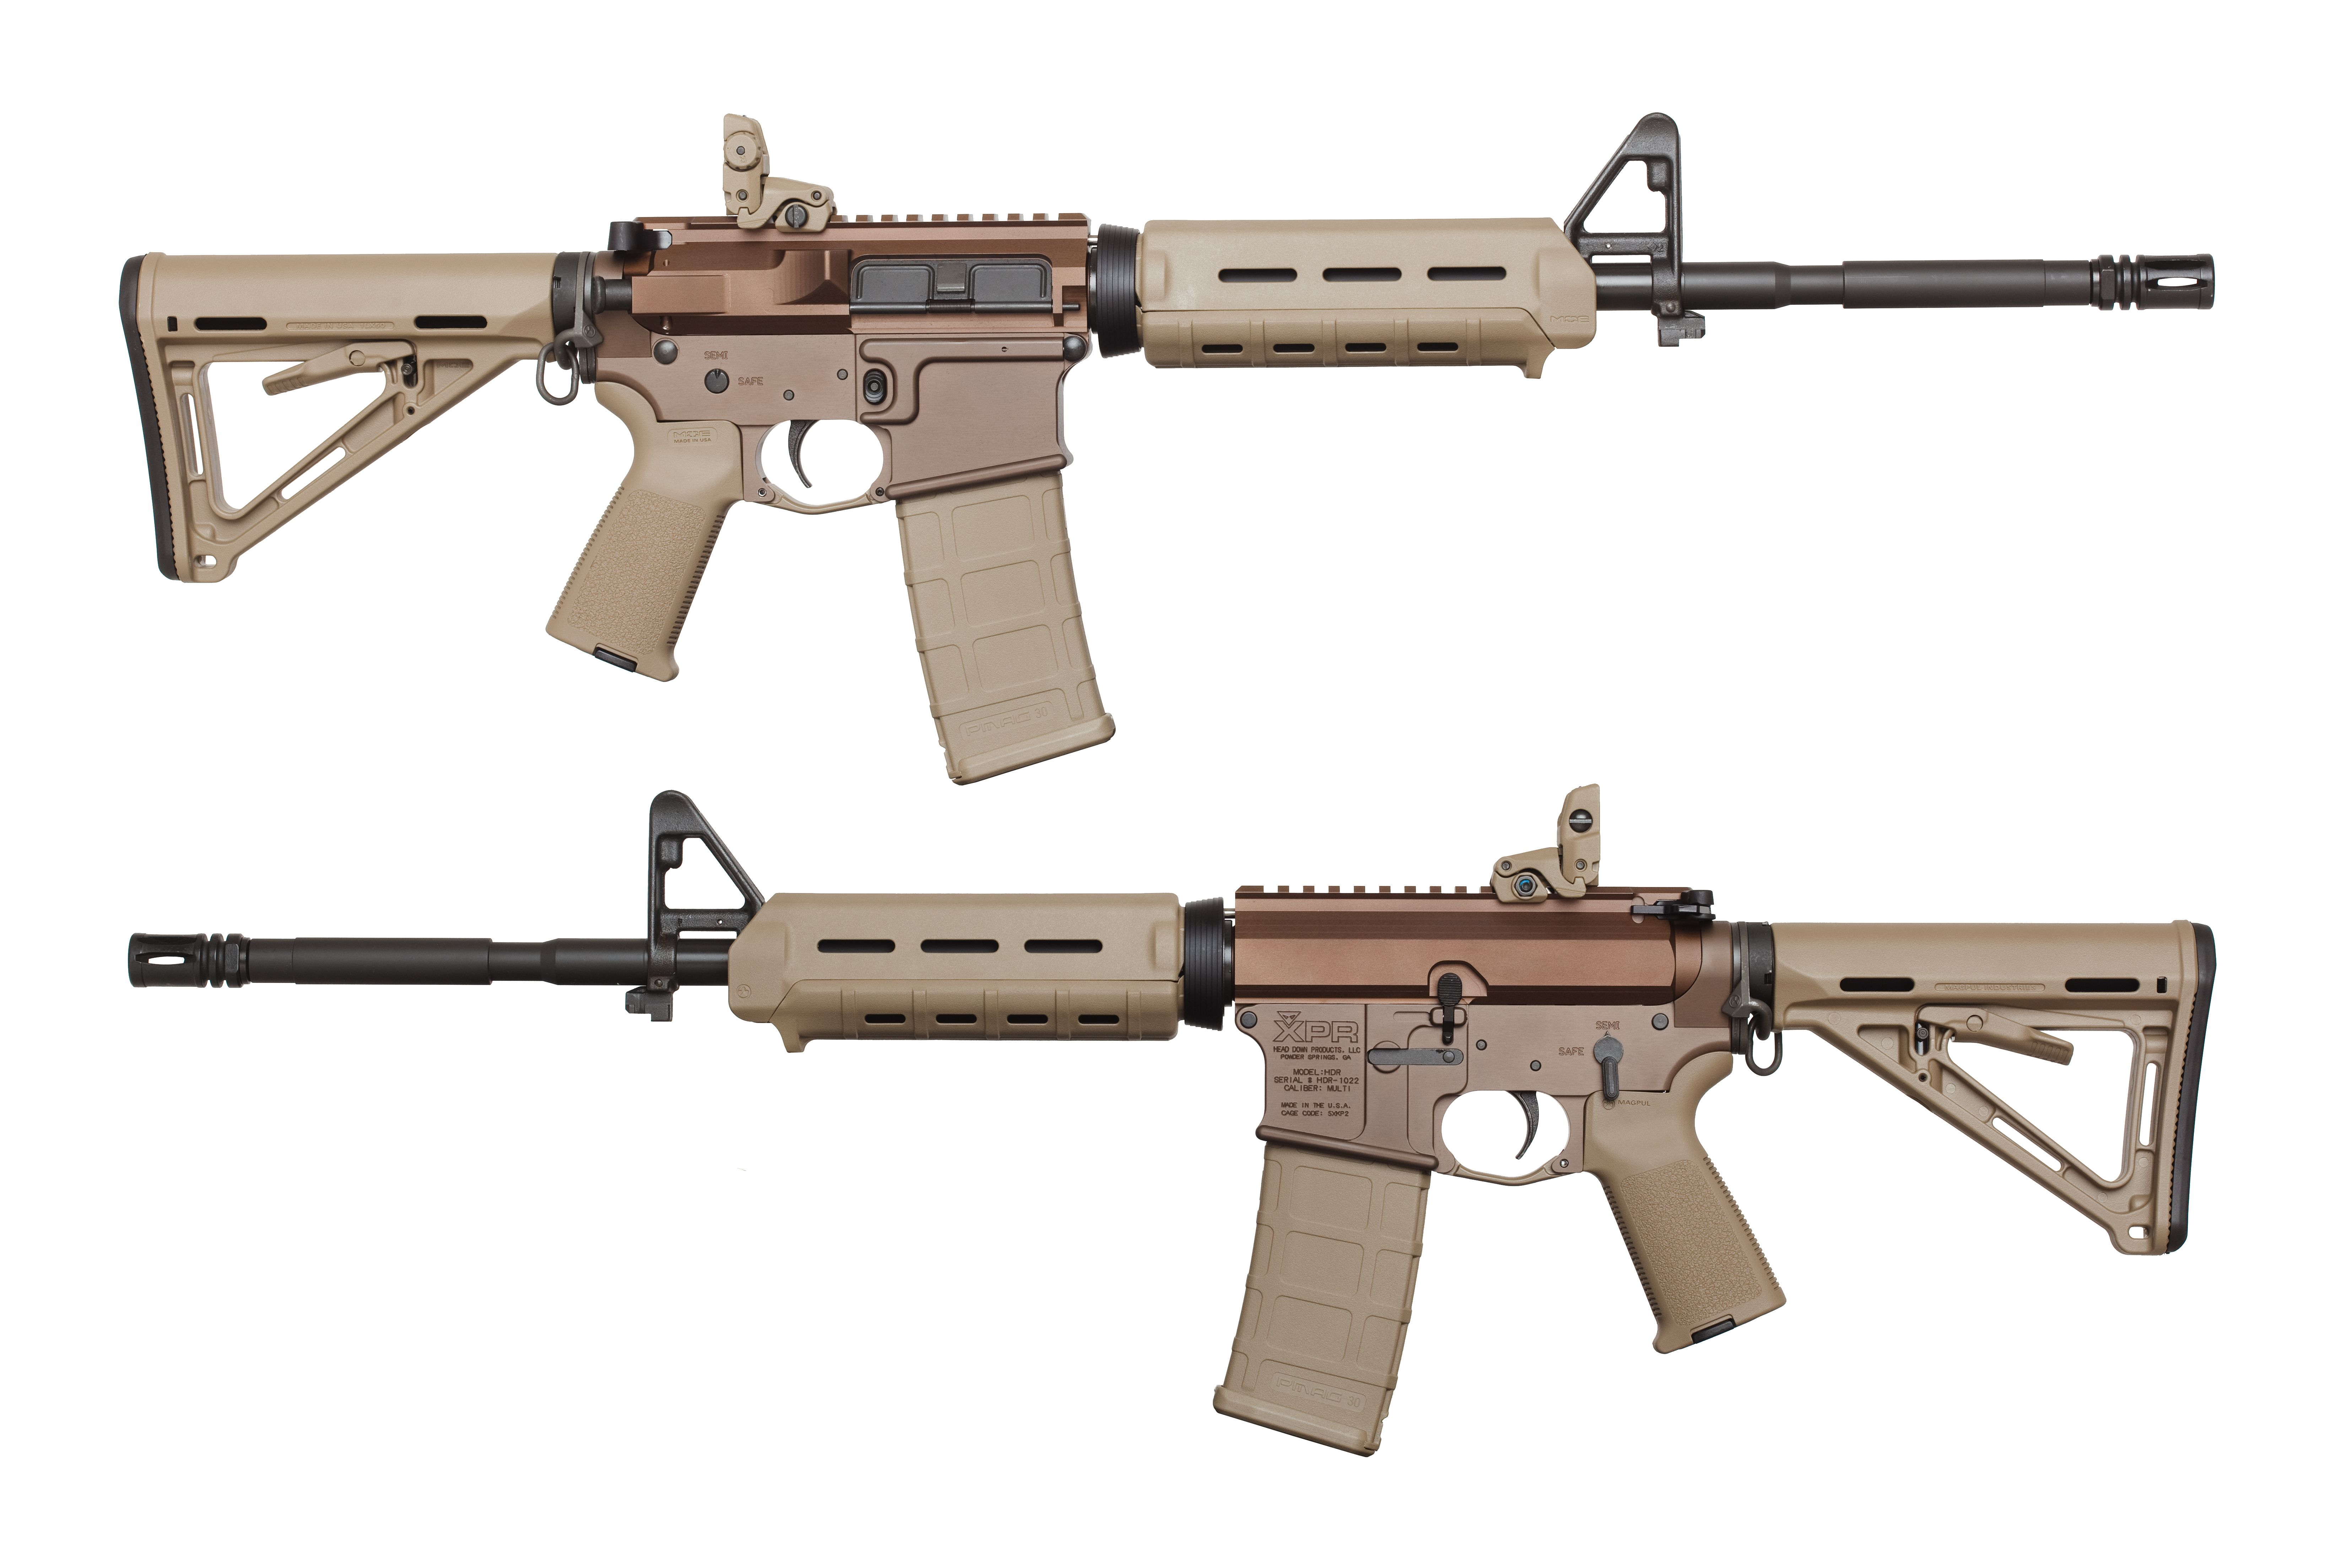 hd br anodized fde with magpul moe furniture  head down  pinterest - hd br anodized fde with magpul moe furniture